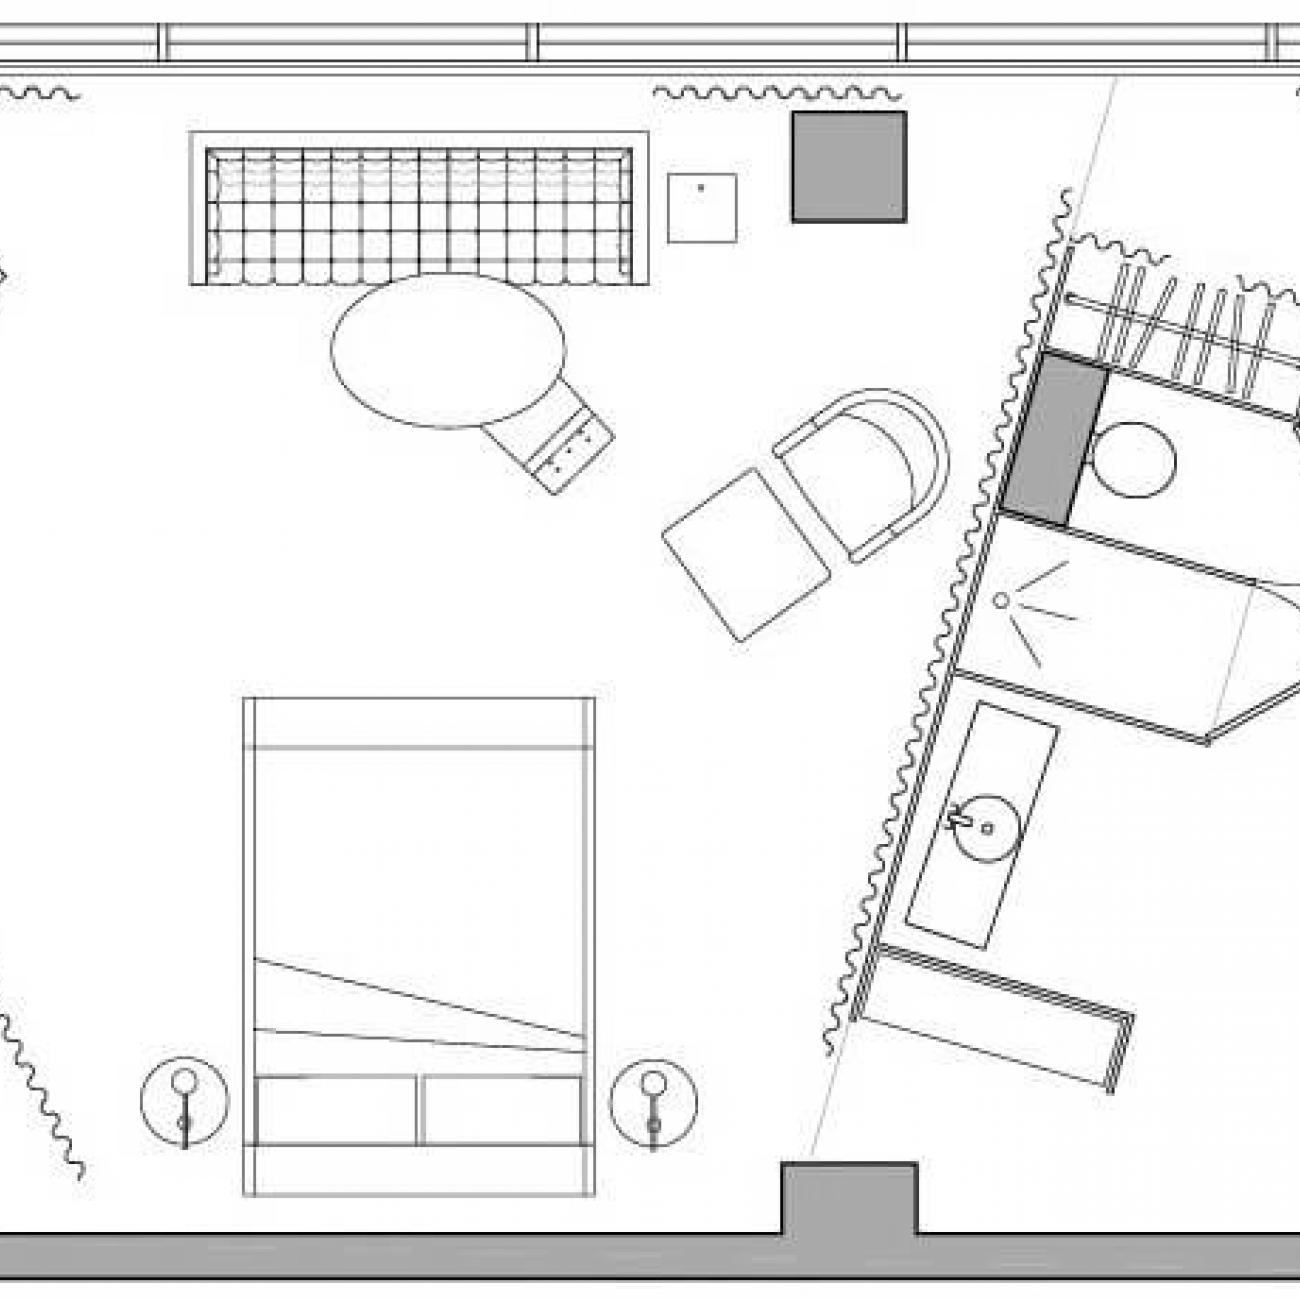 Sanderson loft suite floor plan